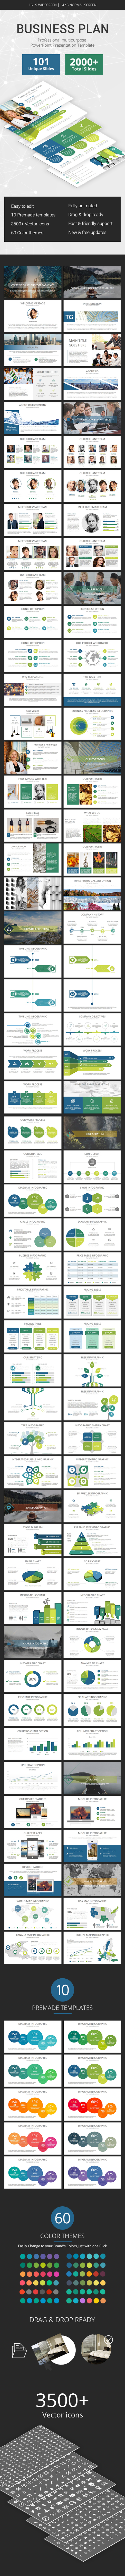 Business Plan PowerPoint Presentation Template - Business PowerPoint Templates